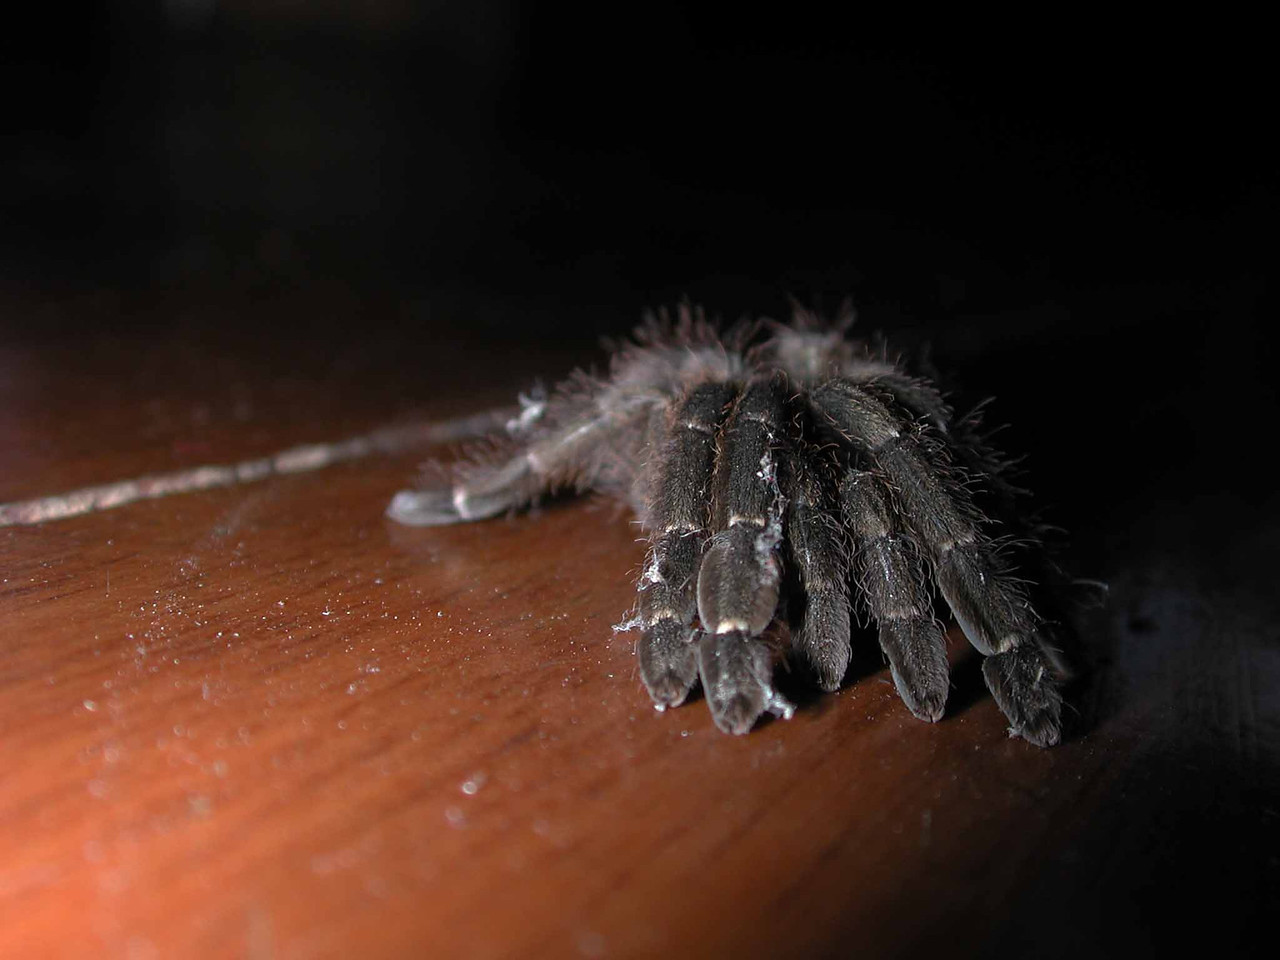 i found this Tarantula in my shoe one morning the slightly scary way by pulling it out with my hand.  better than three shots of espresso.